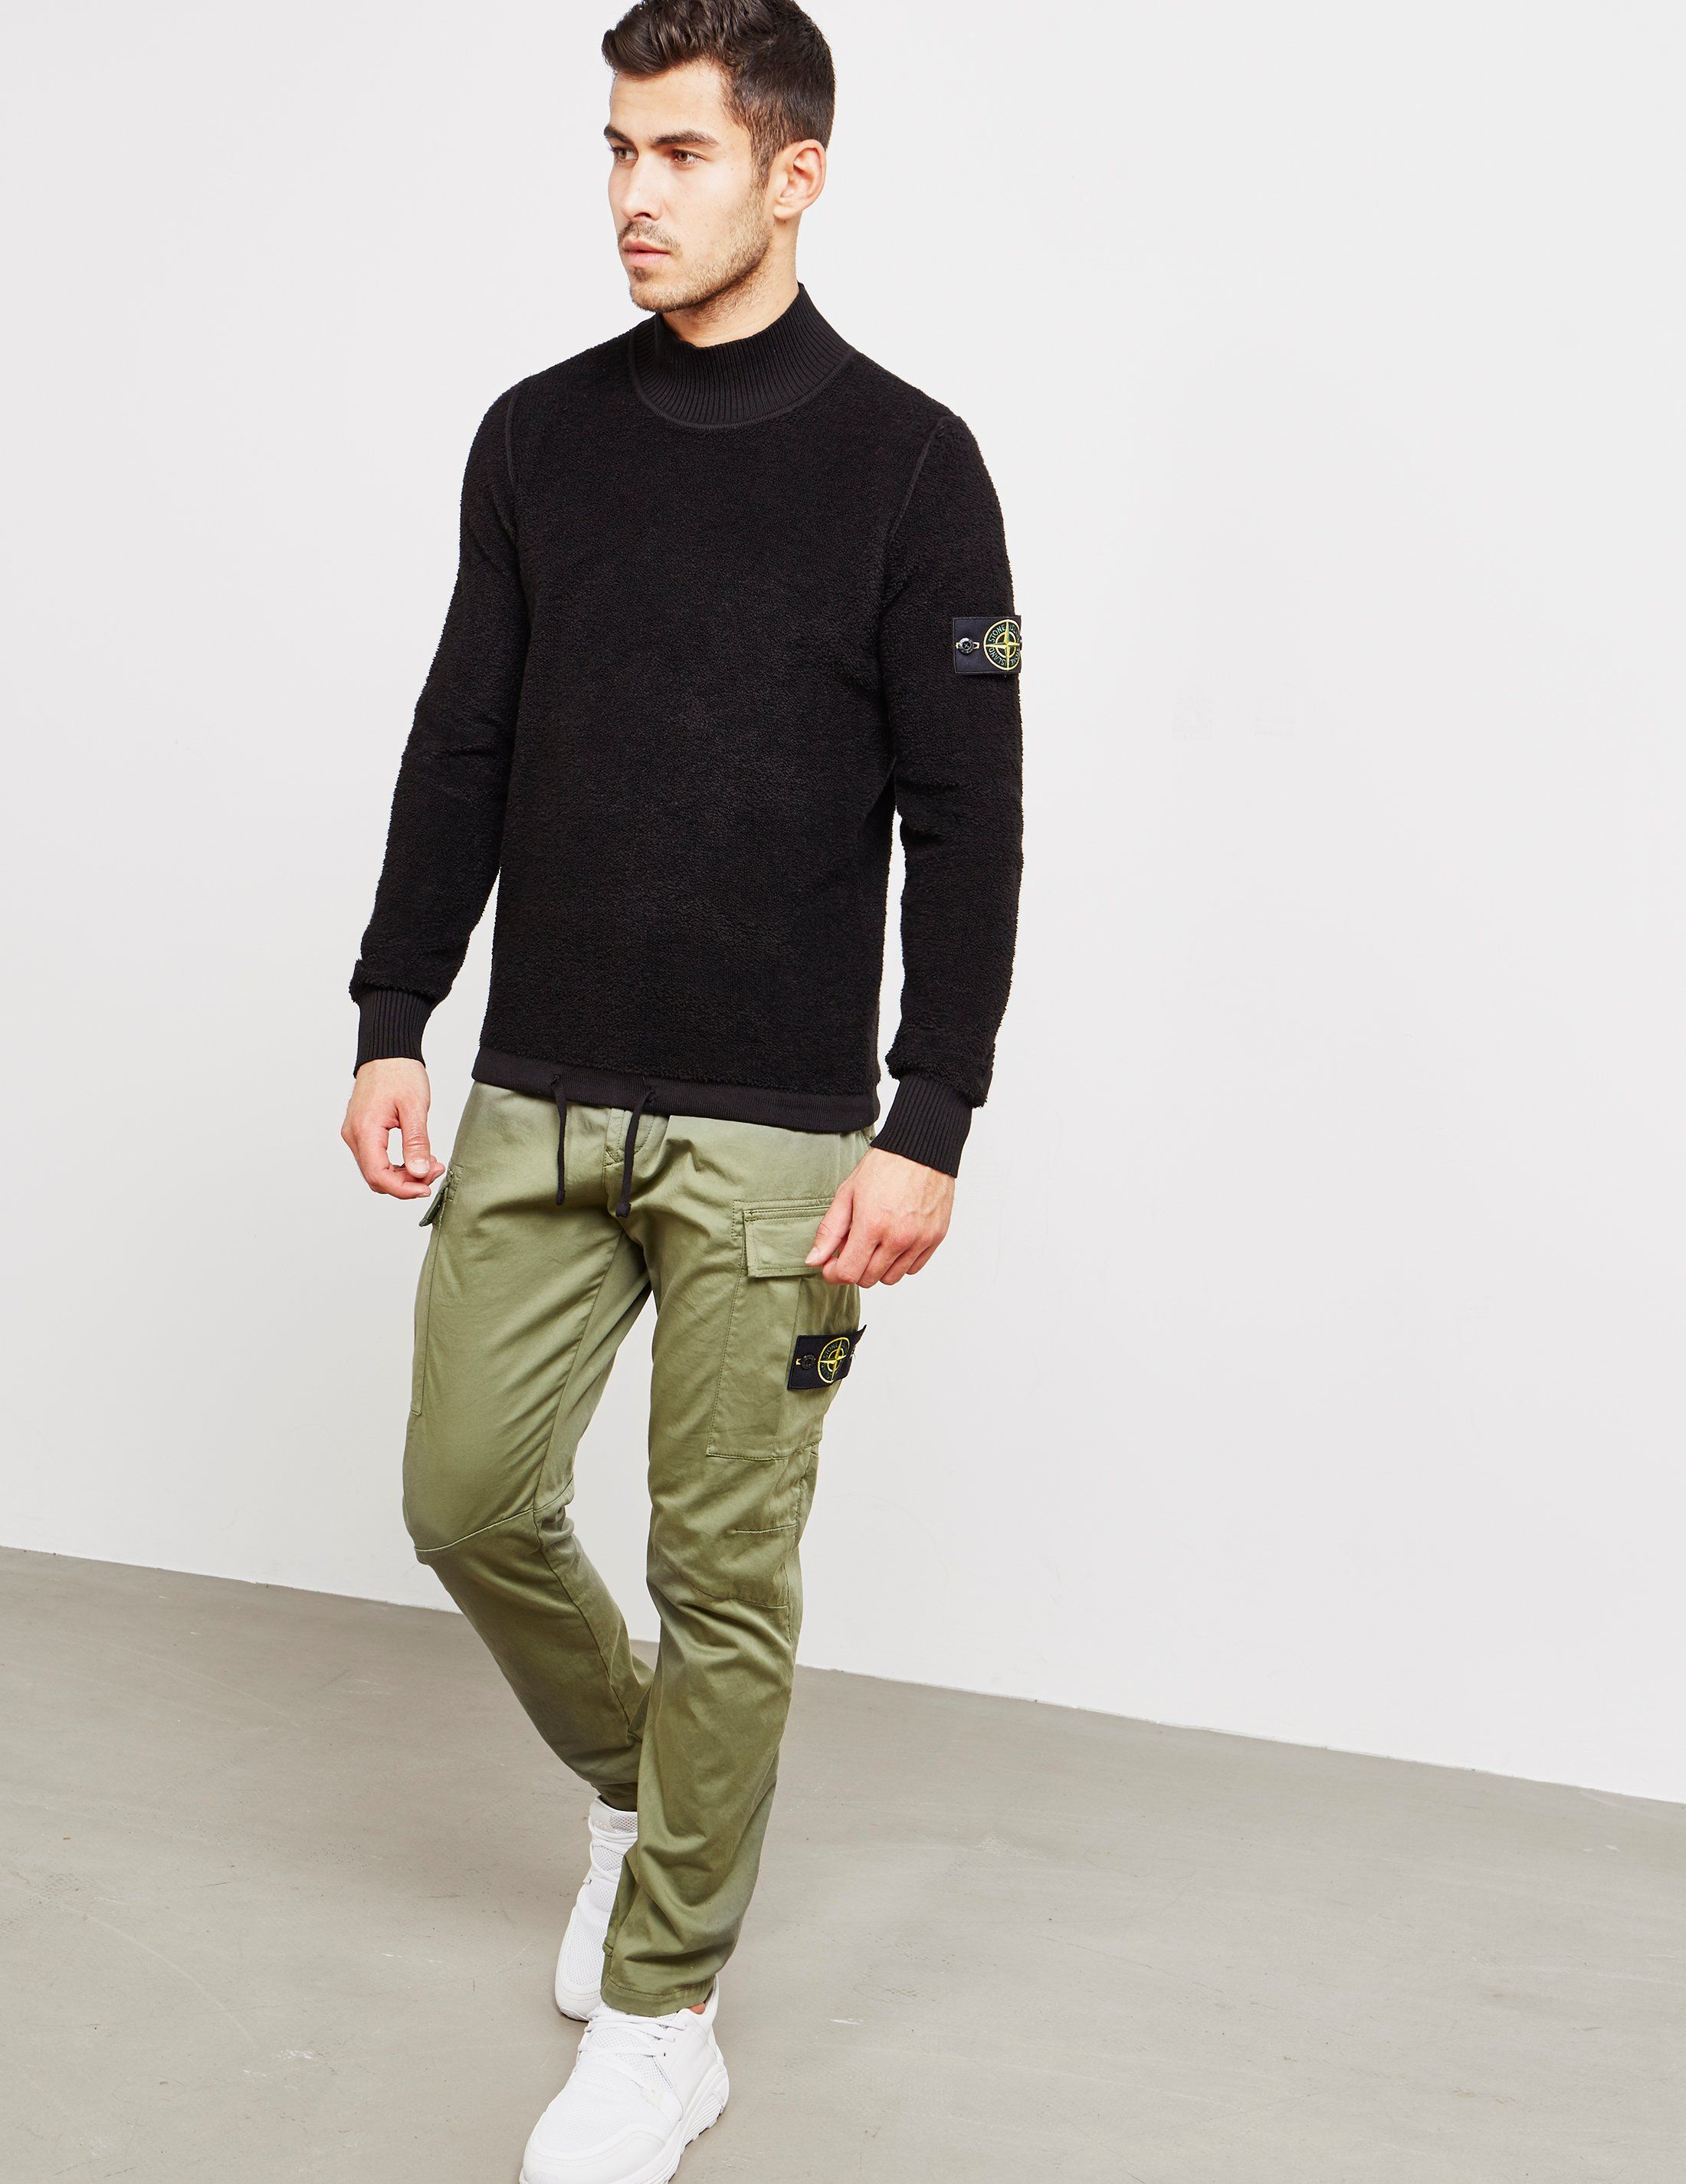 Stone Island Terry High Kneck Knit Jumper - Online Exclusive